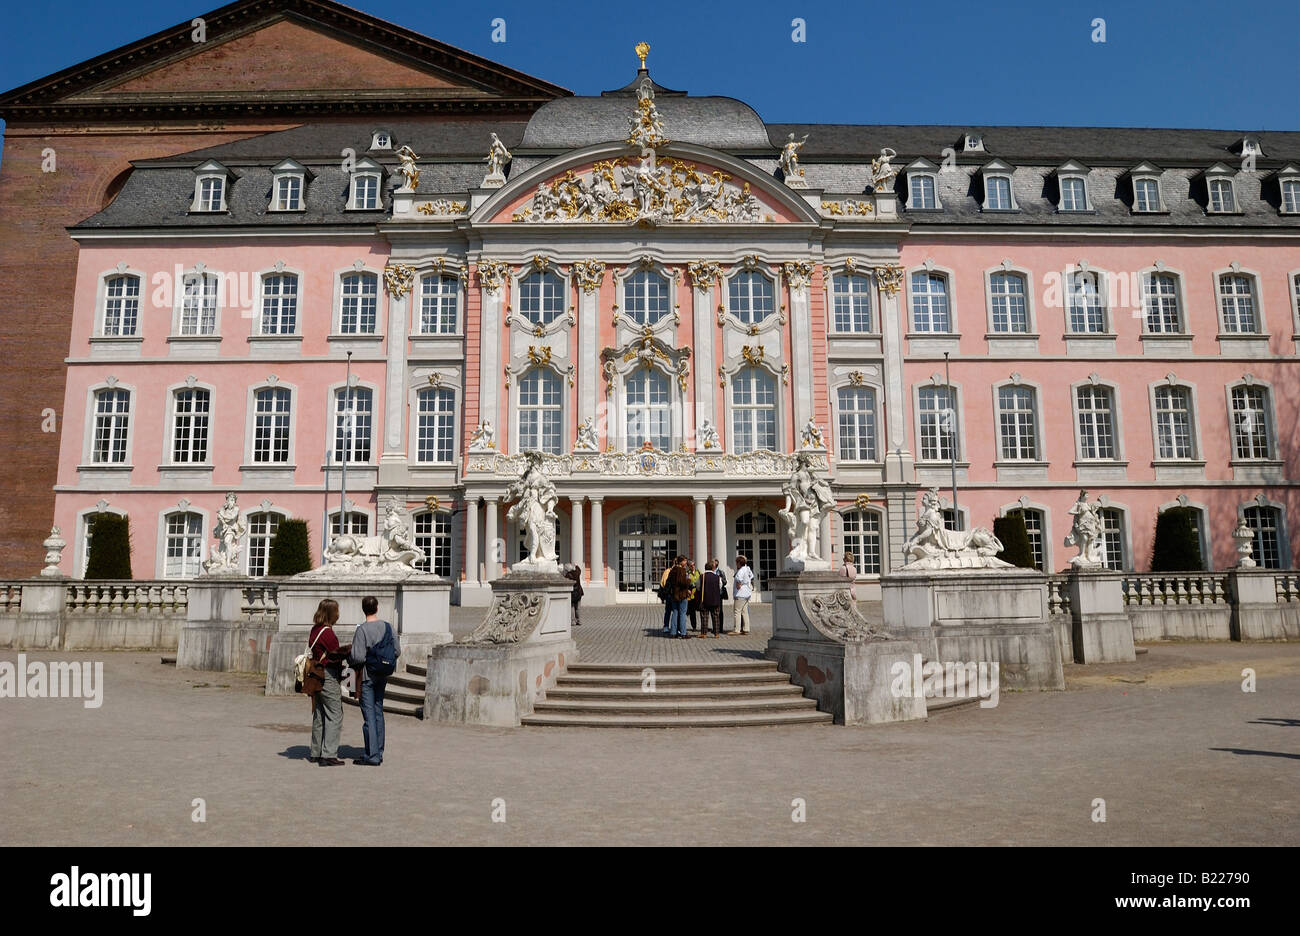 the Electoral Palace, Palace of the prince elector, Kurfuerstliches Palais, Baroque PALACE, Trier, Germany, Europe Stock Photo